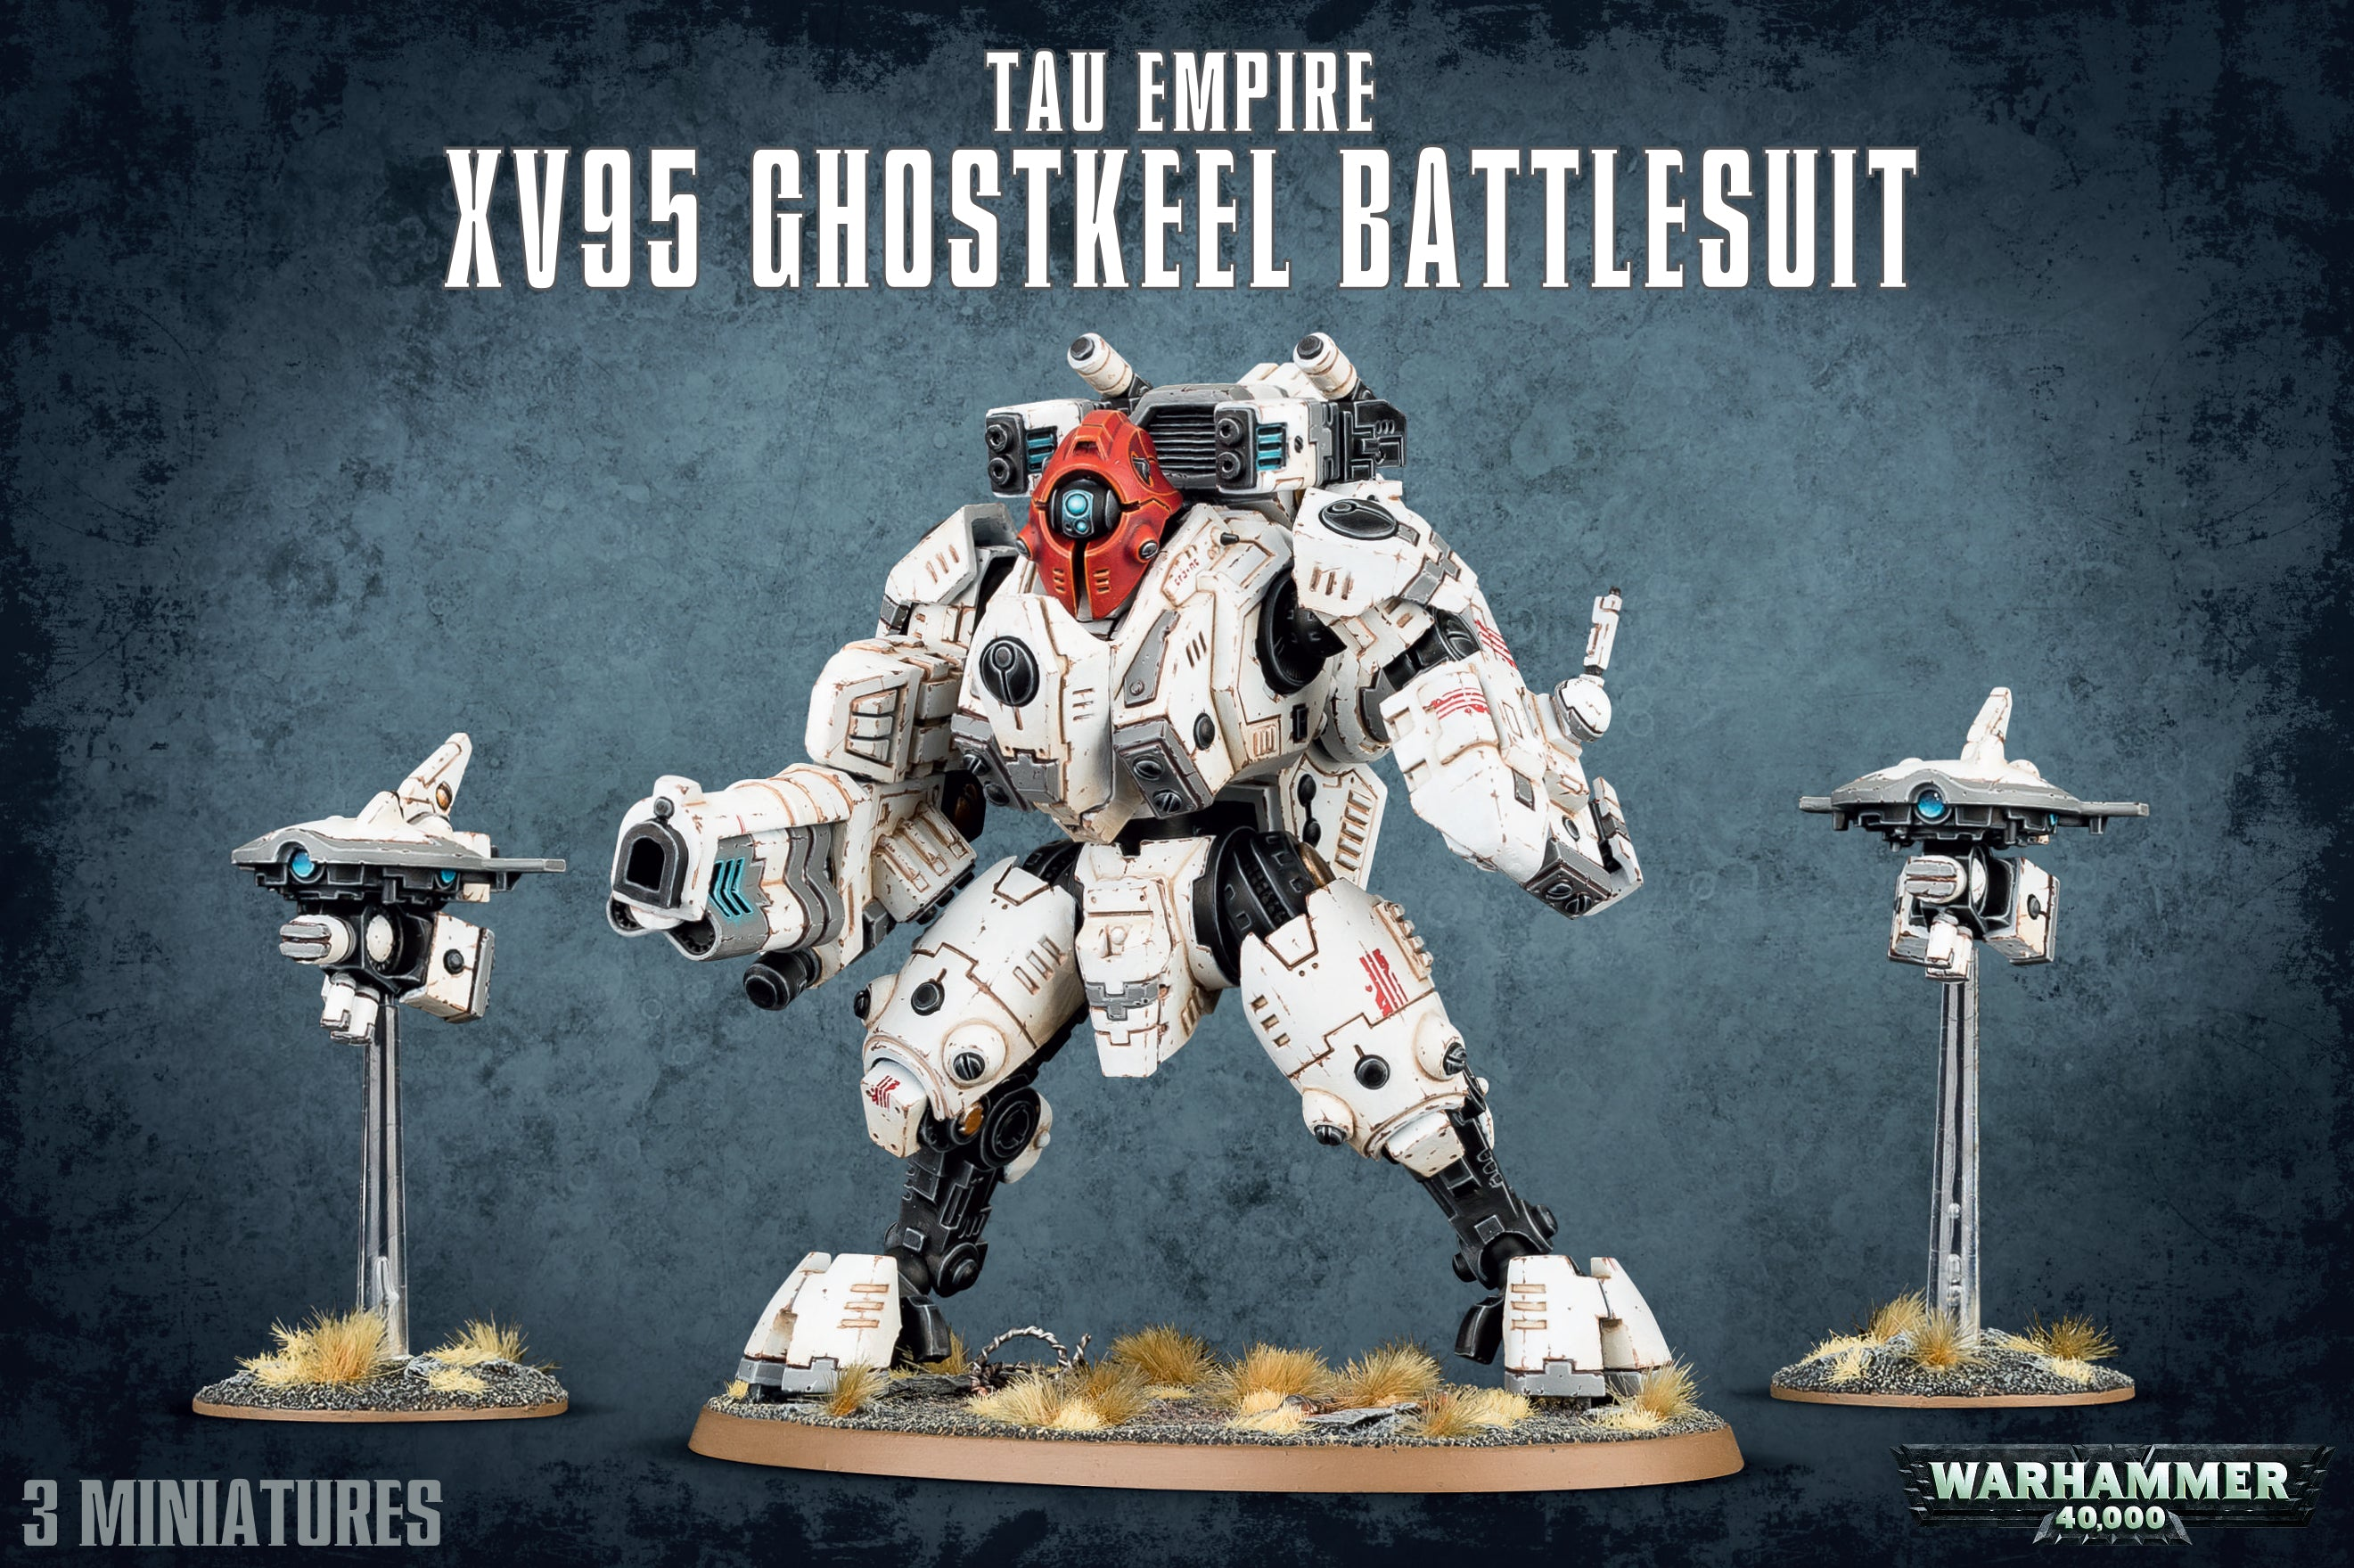 XV95 Ghostkeel Battlesuit-Warhammer 40k-Multizone: Comics And Games | Multizone: Comics And Games